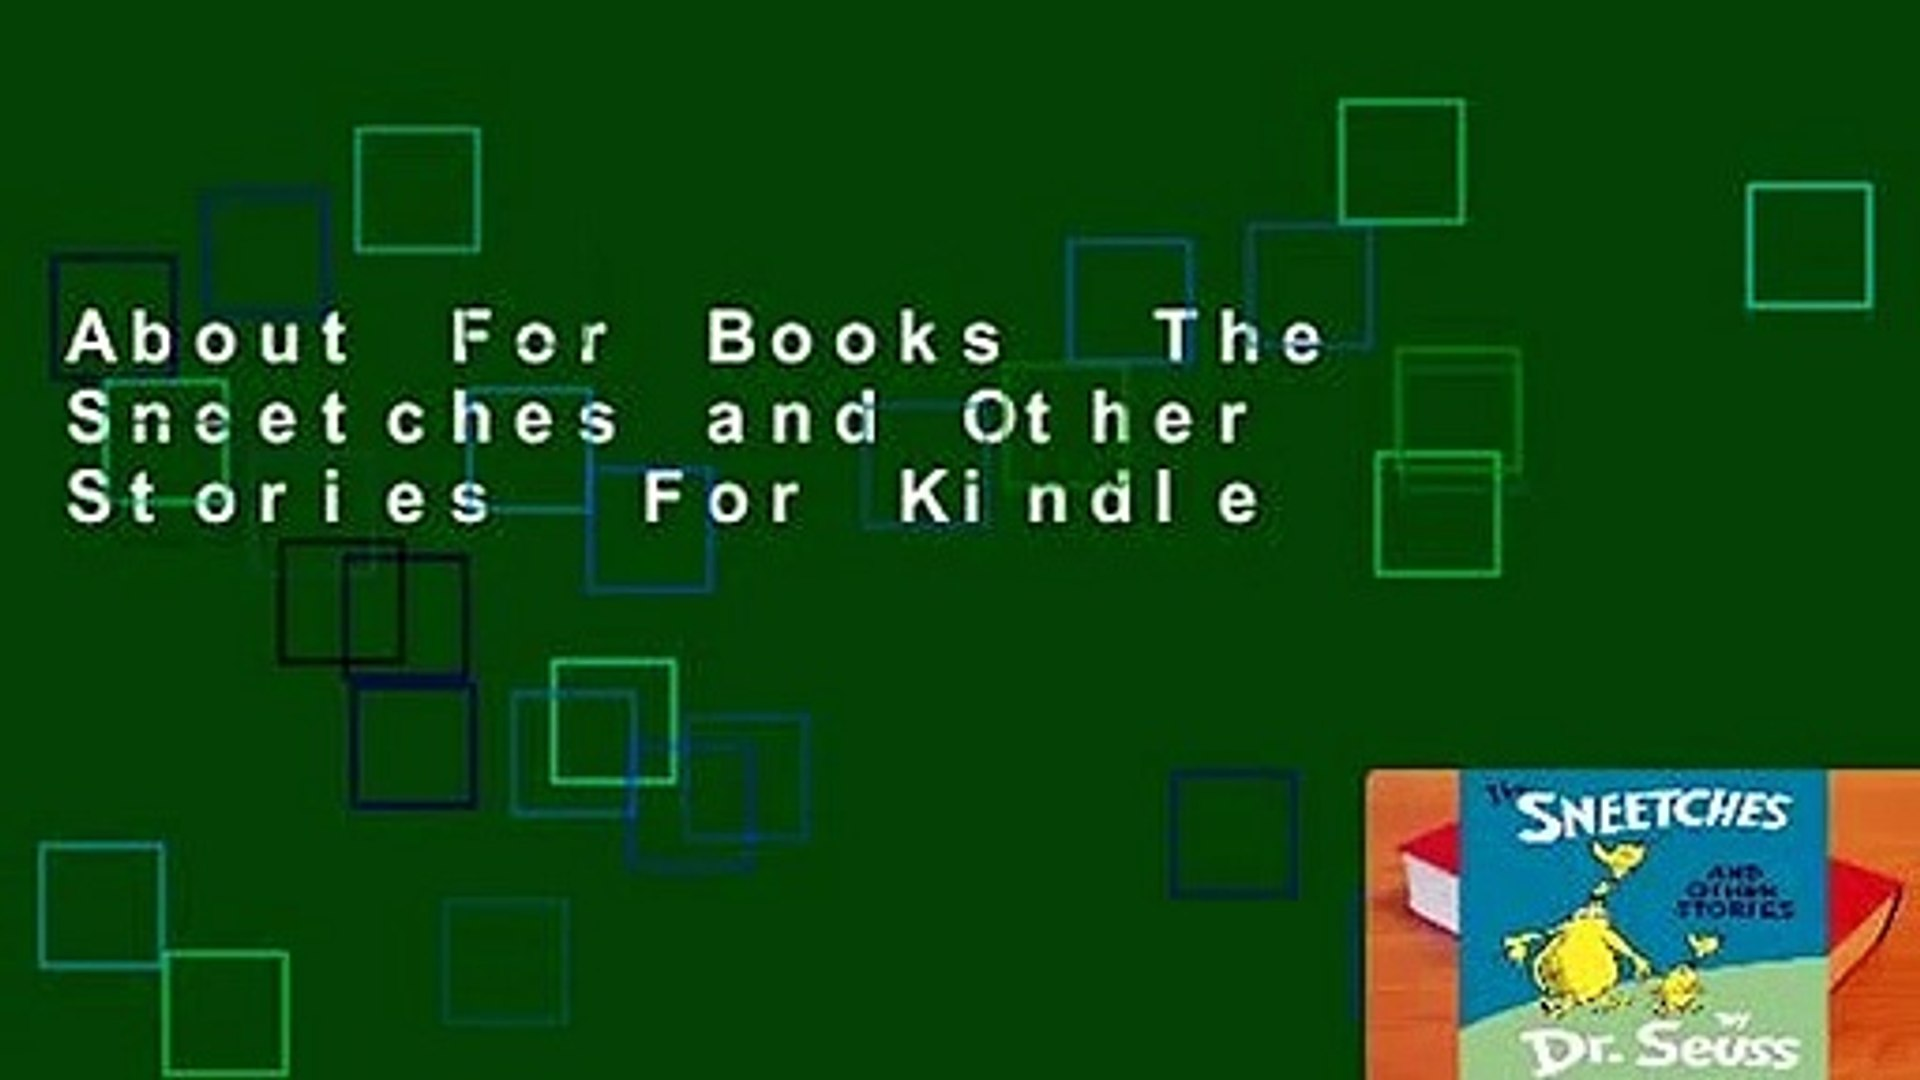 About For Books  The Sneetches and Other Stories  For Kindle